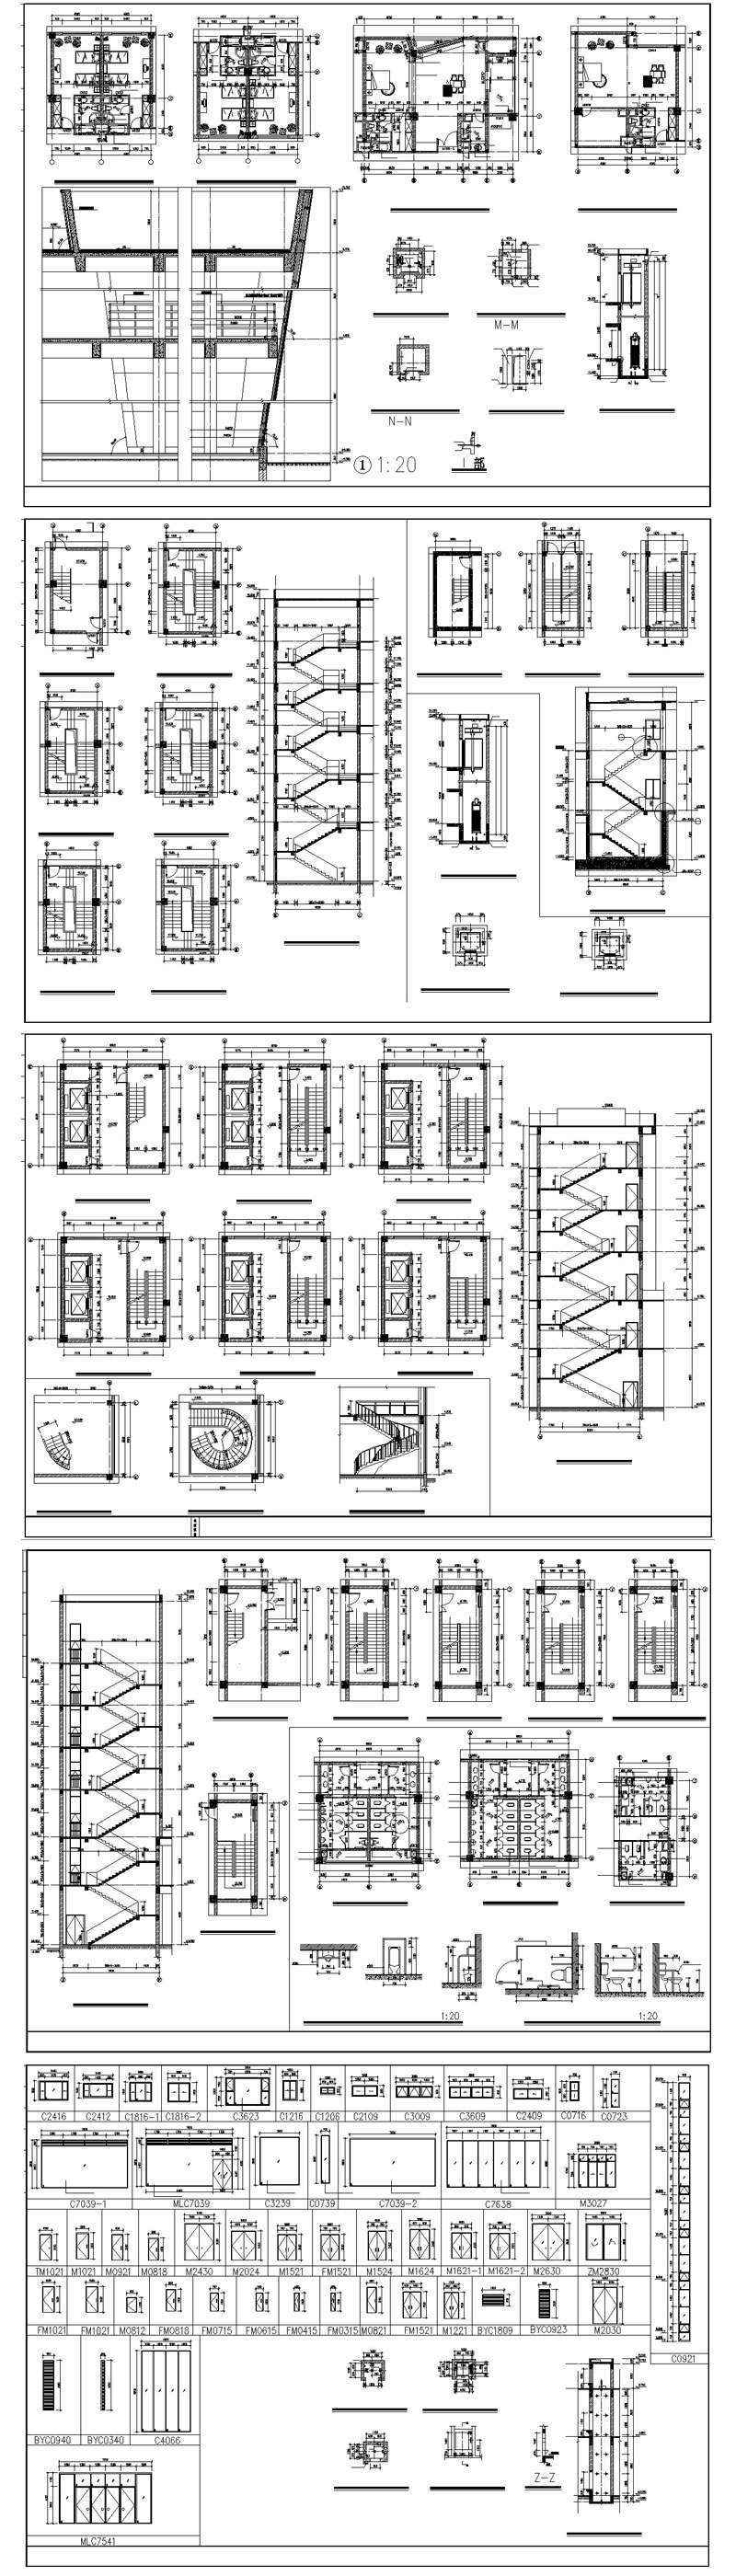 Autocad Blocks Residential Building Cad Design Collection V 2layout Lobby Room Design Public Facilities Counter Autocad Blocks Drawings Cad